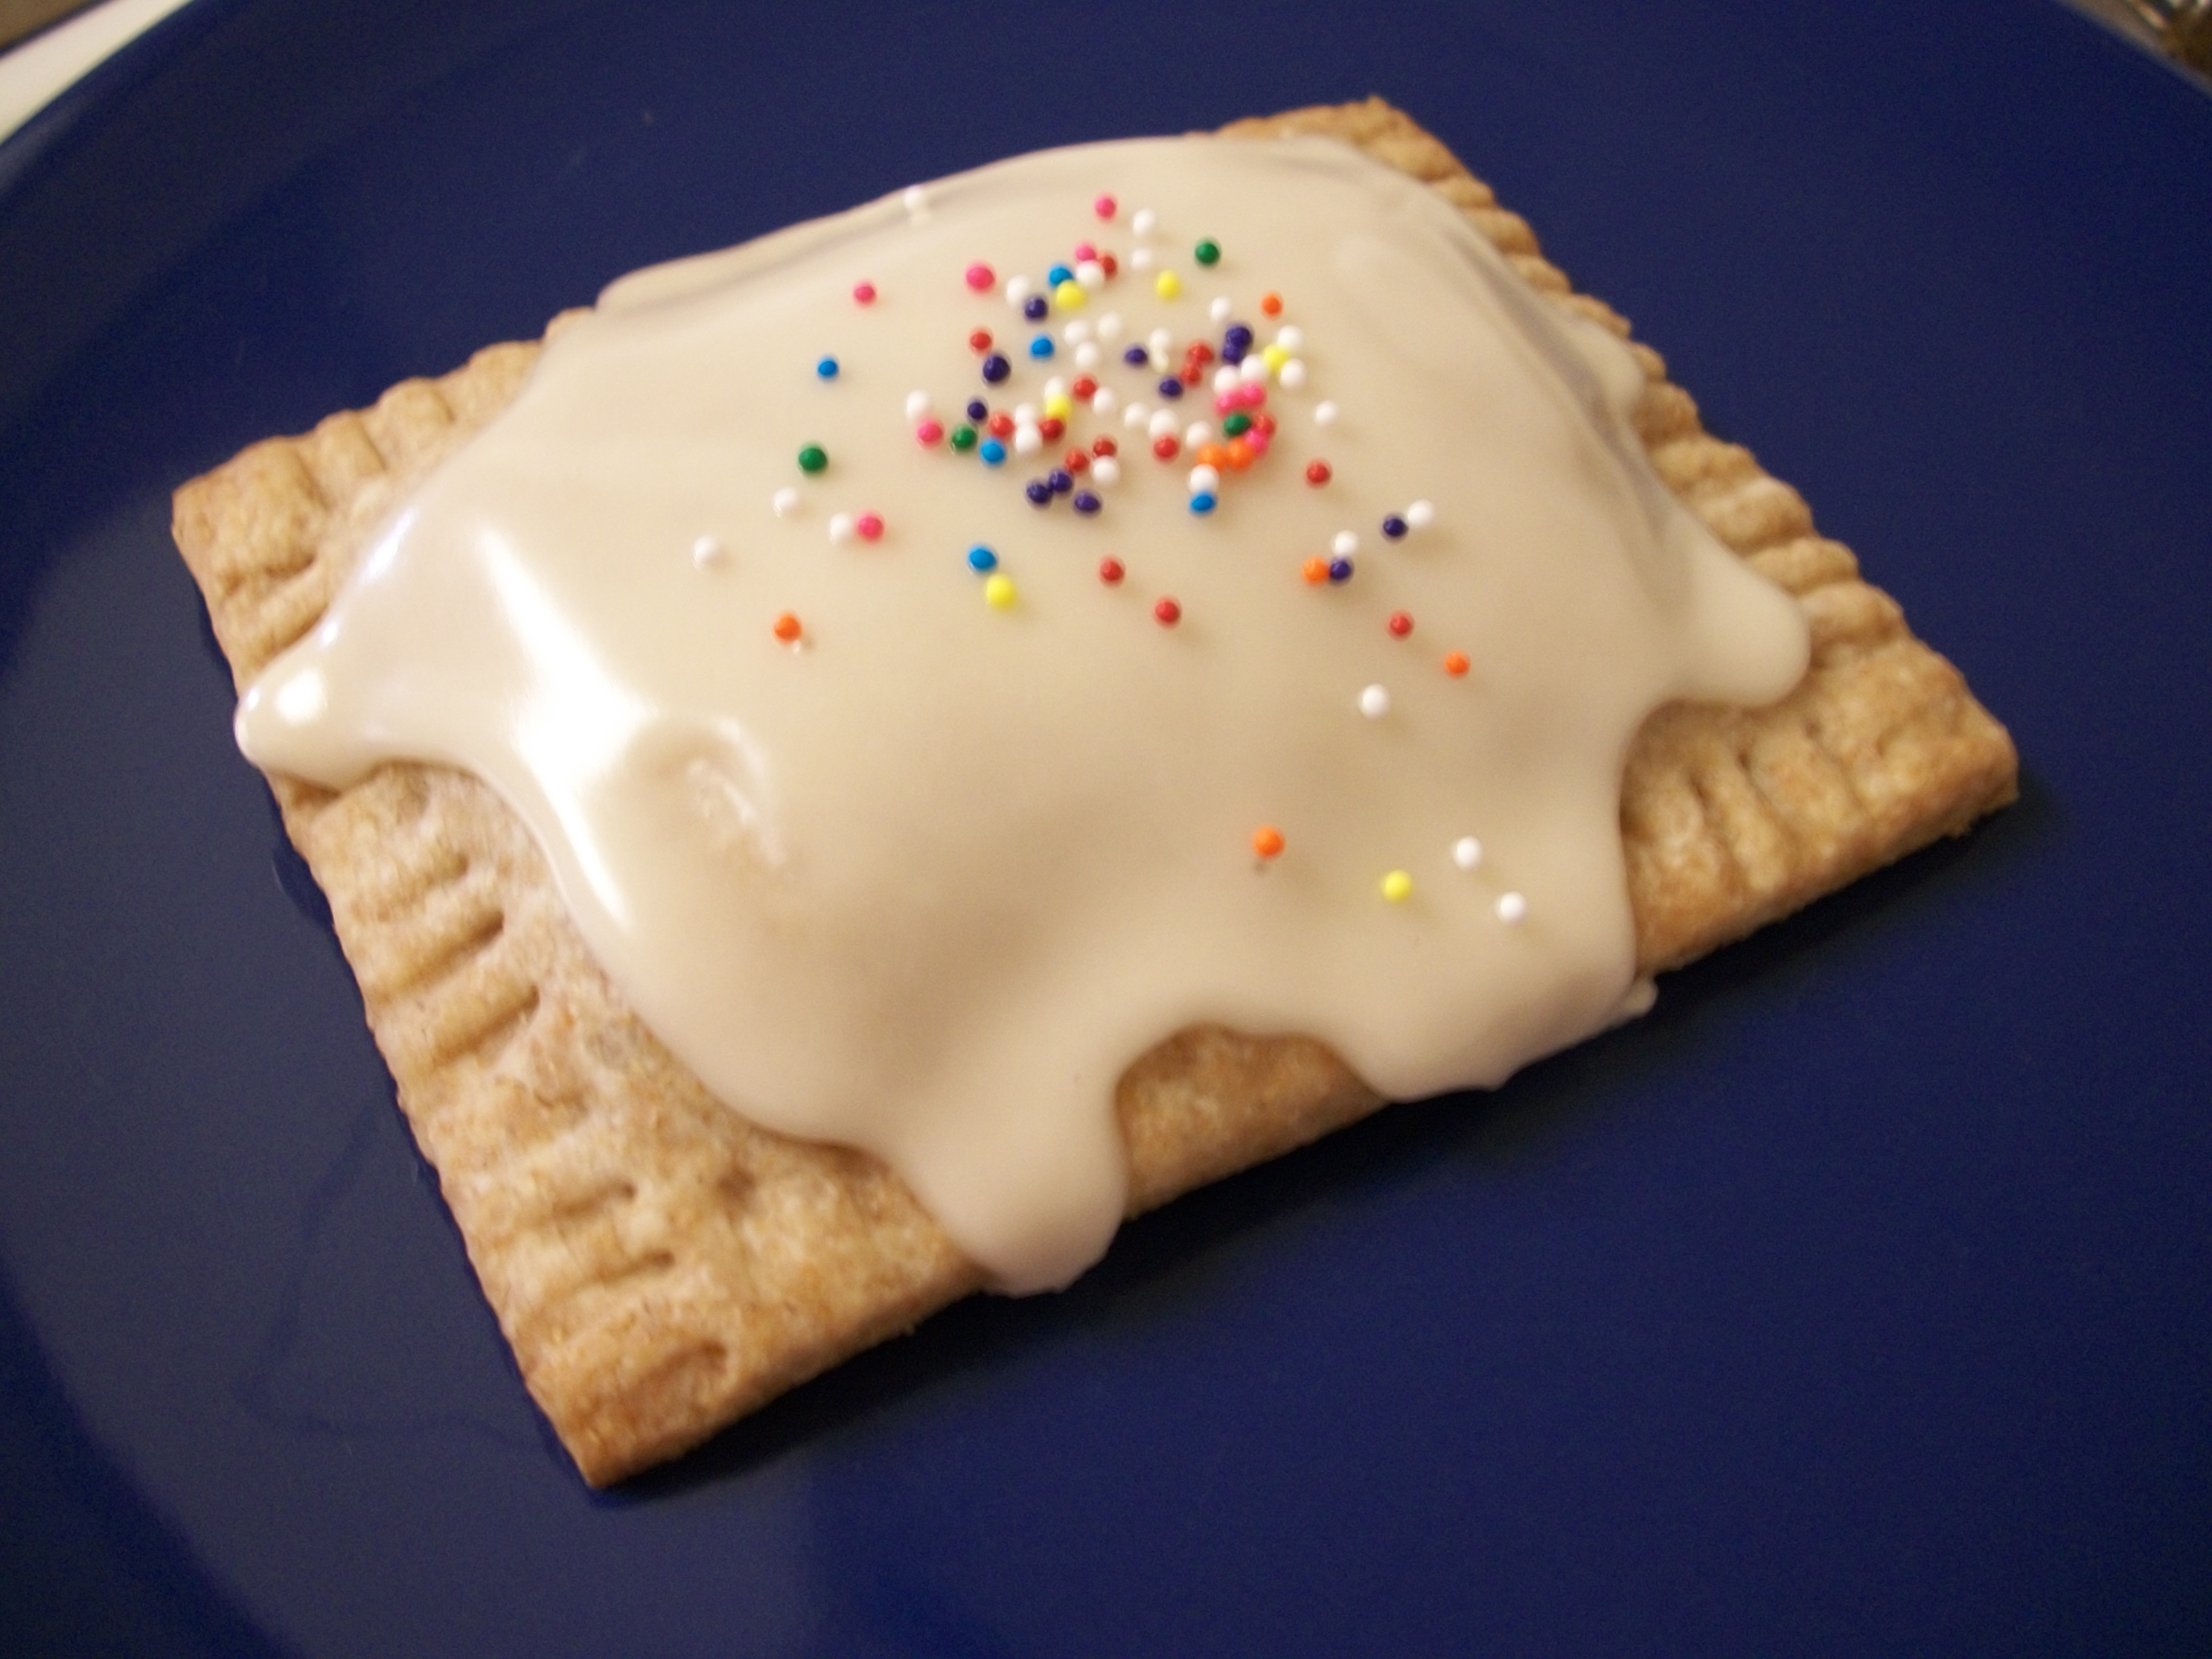 Merveilleux A While Ago, I Found A Recipe For Homemade Pop Tarts On One Of My Favorite  Blogs Smitten Kitchen. They Looked Awesome! So I Put It On My List Of  Recipes To ...